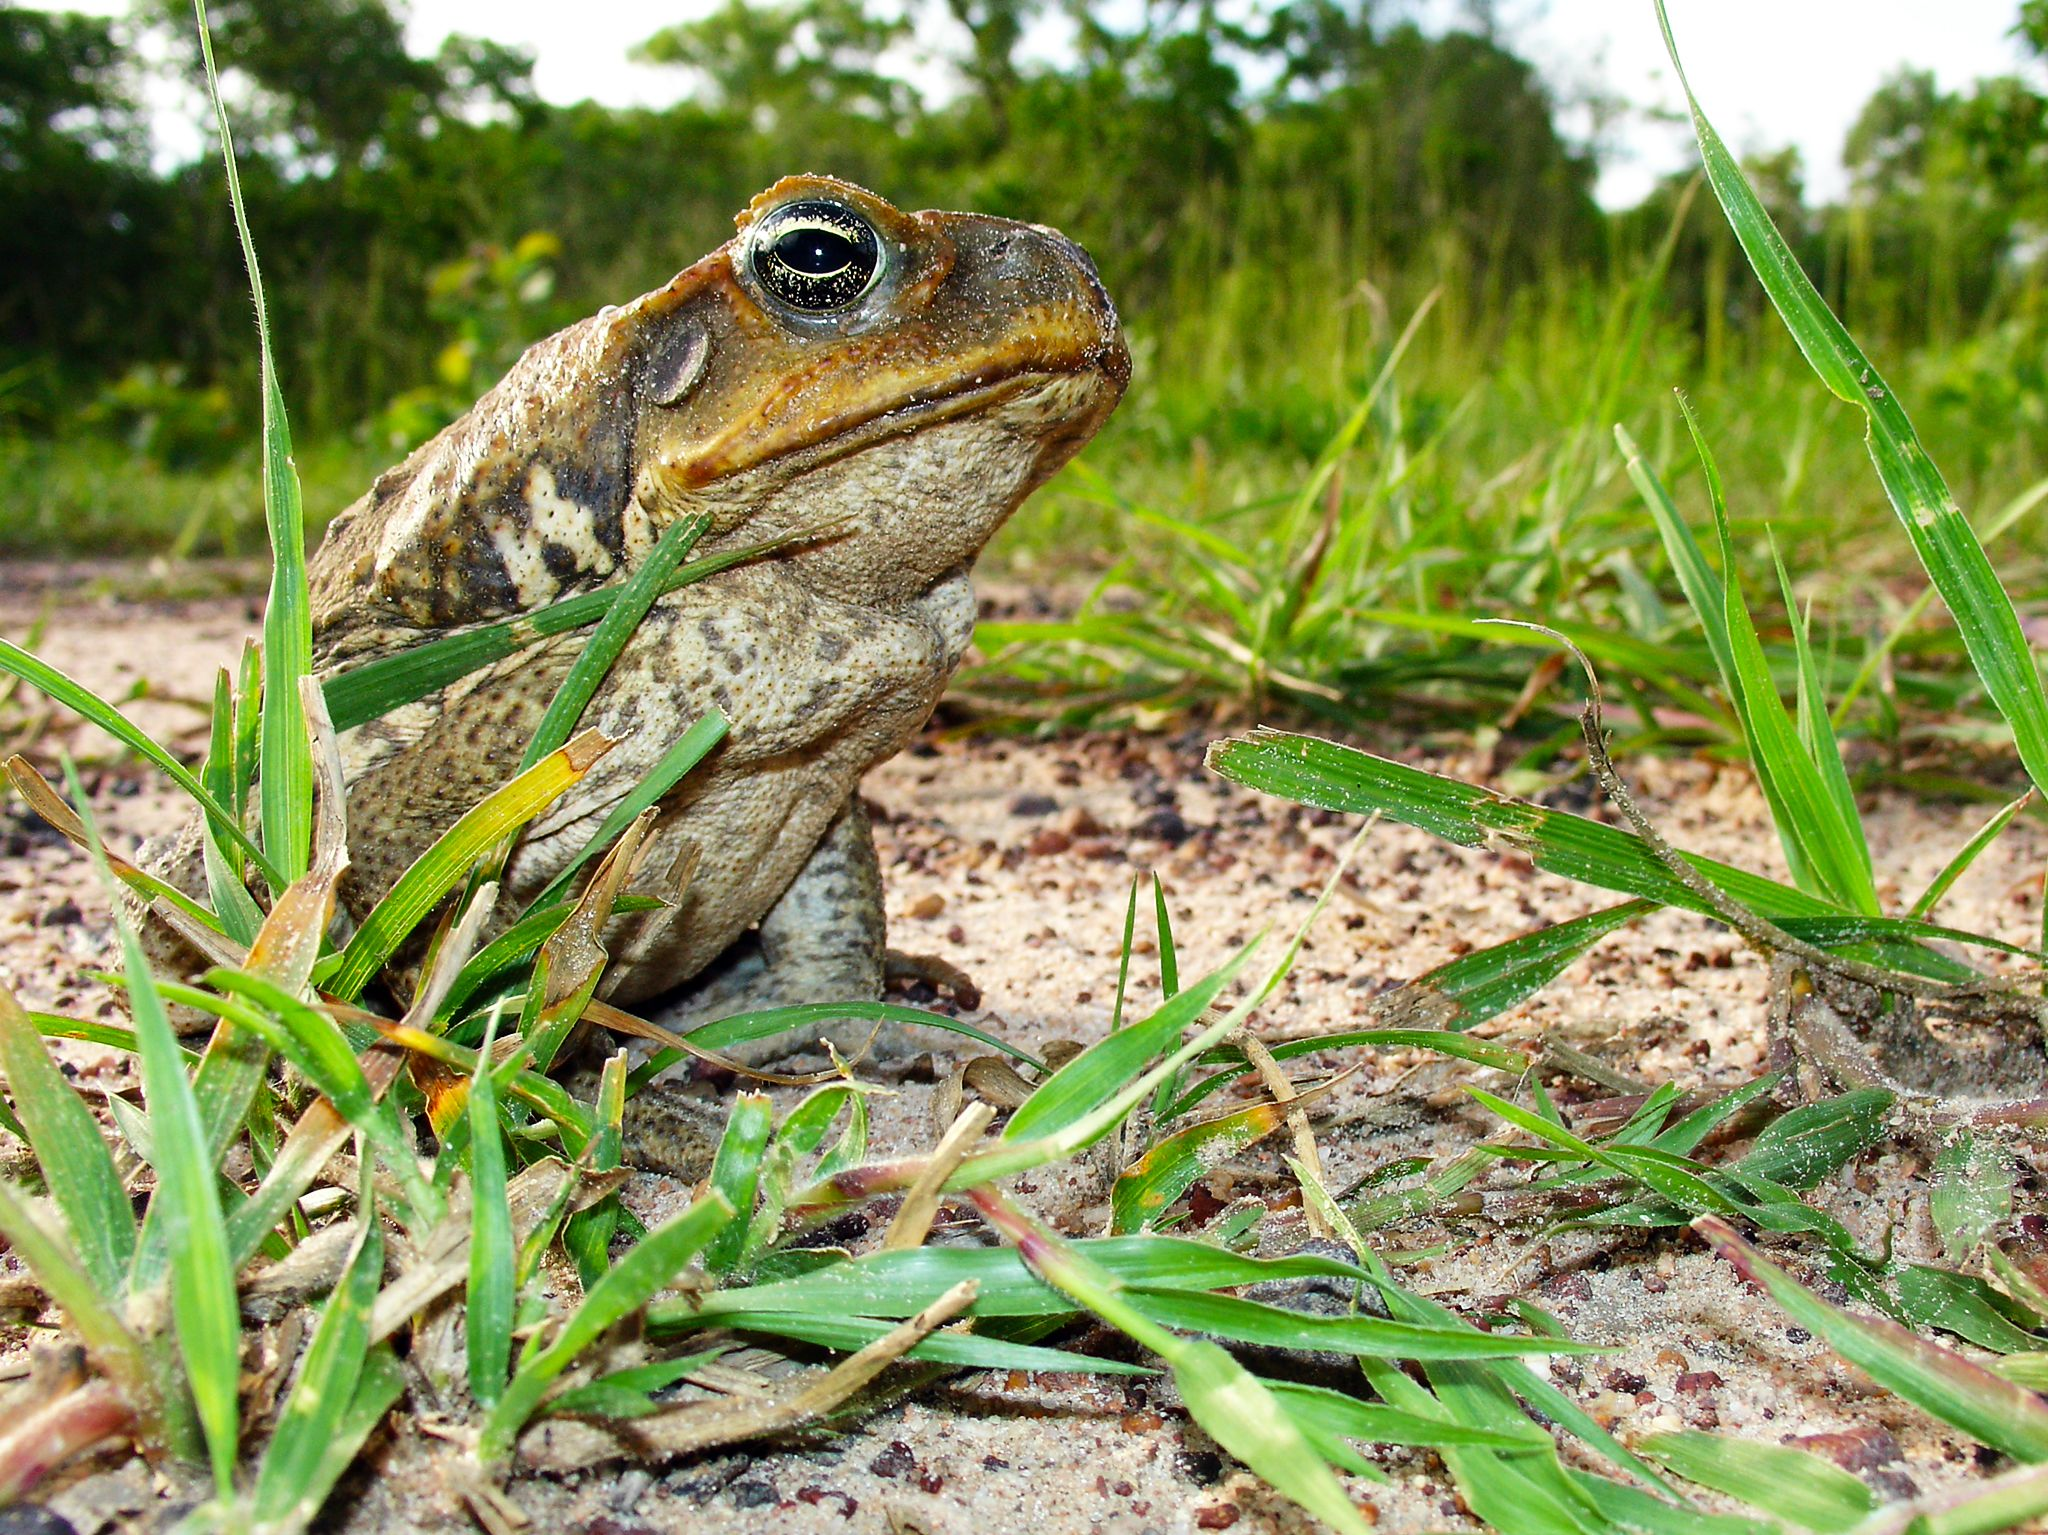 Cane Toad. This image is from Man V. Animal. [Foto del giorno - settembre 2017]